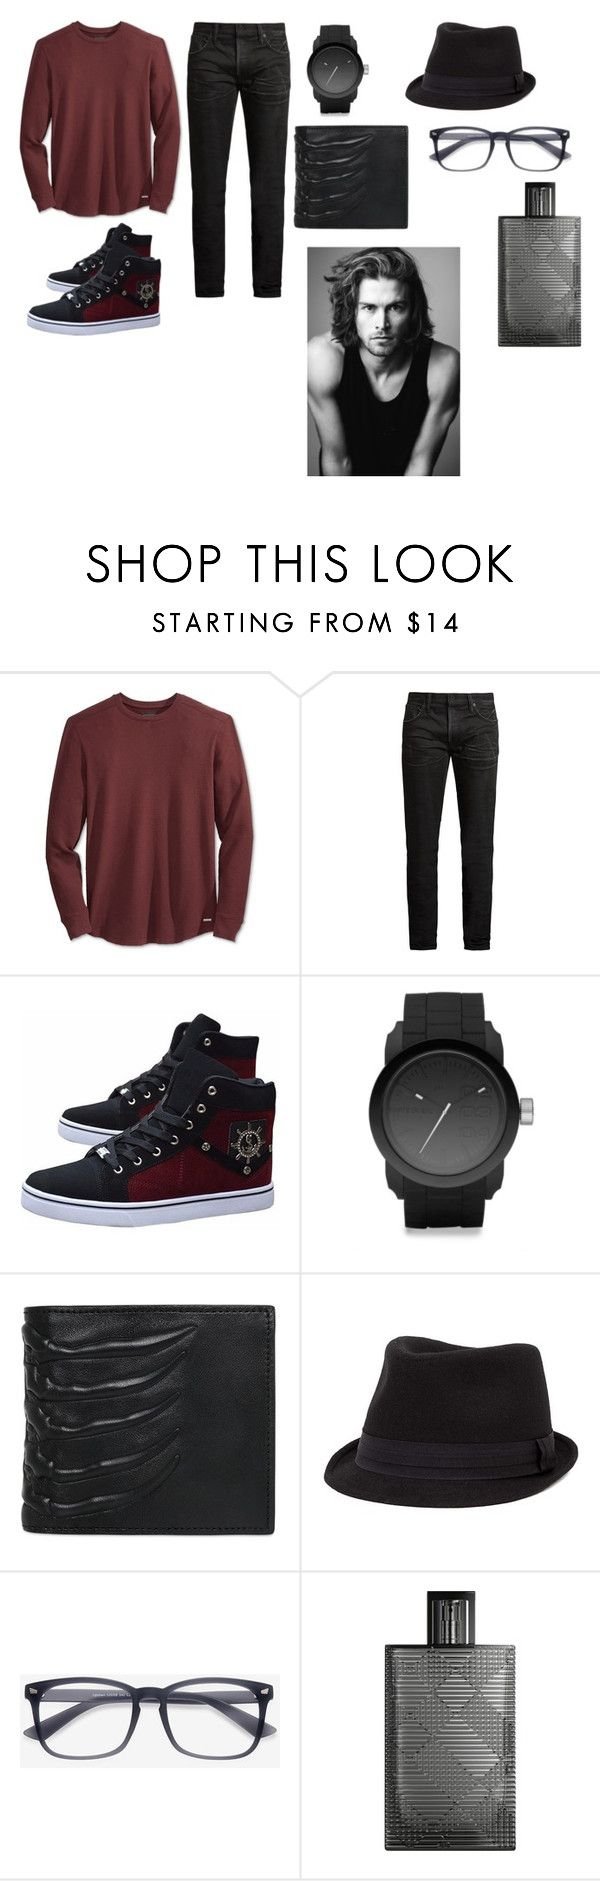 """вечер"" by reduska on Polyvore featuring GUESS, MasterCraft Union, Diesel, Alexander McQueen, BKE, Burberry, Merrell, men's fashion и menswear"